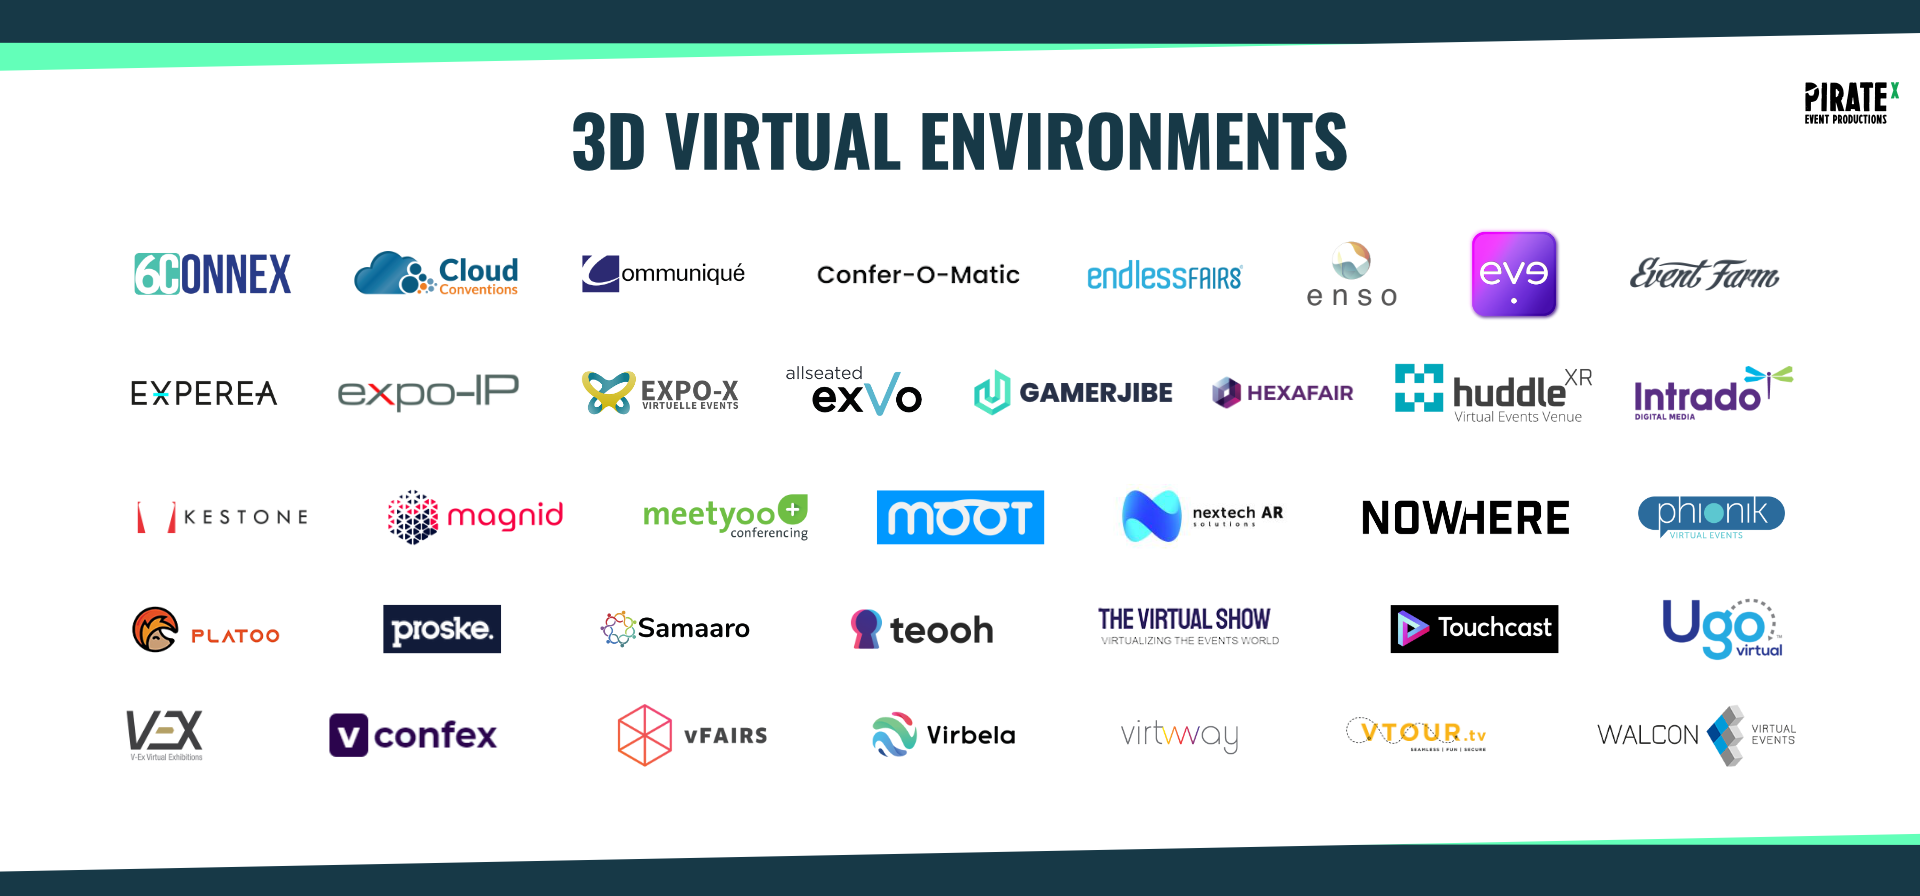 Overview of the Eventtech Landscape April 2021 Update 3D Virtual Environments Category